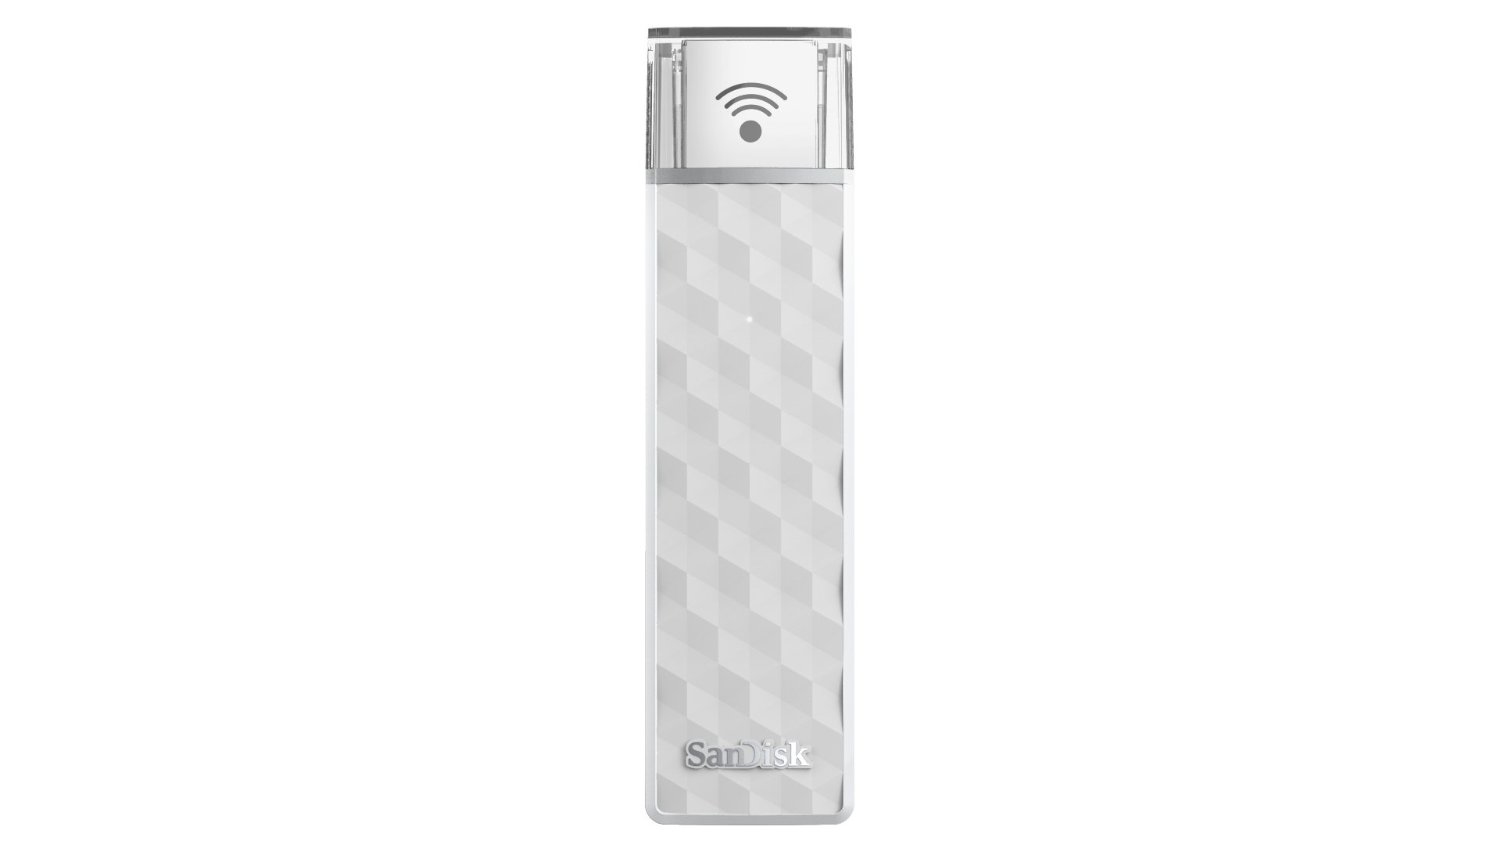 SanDisk Connect Wireless USB Drive 200GB